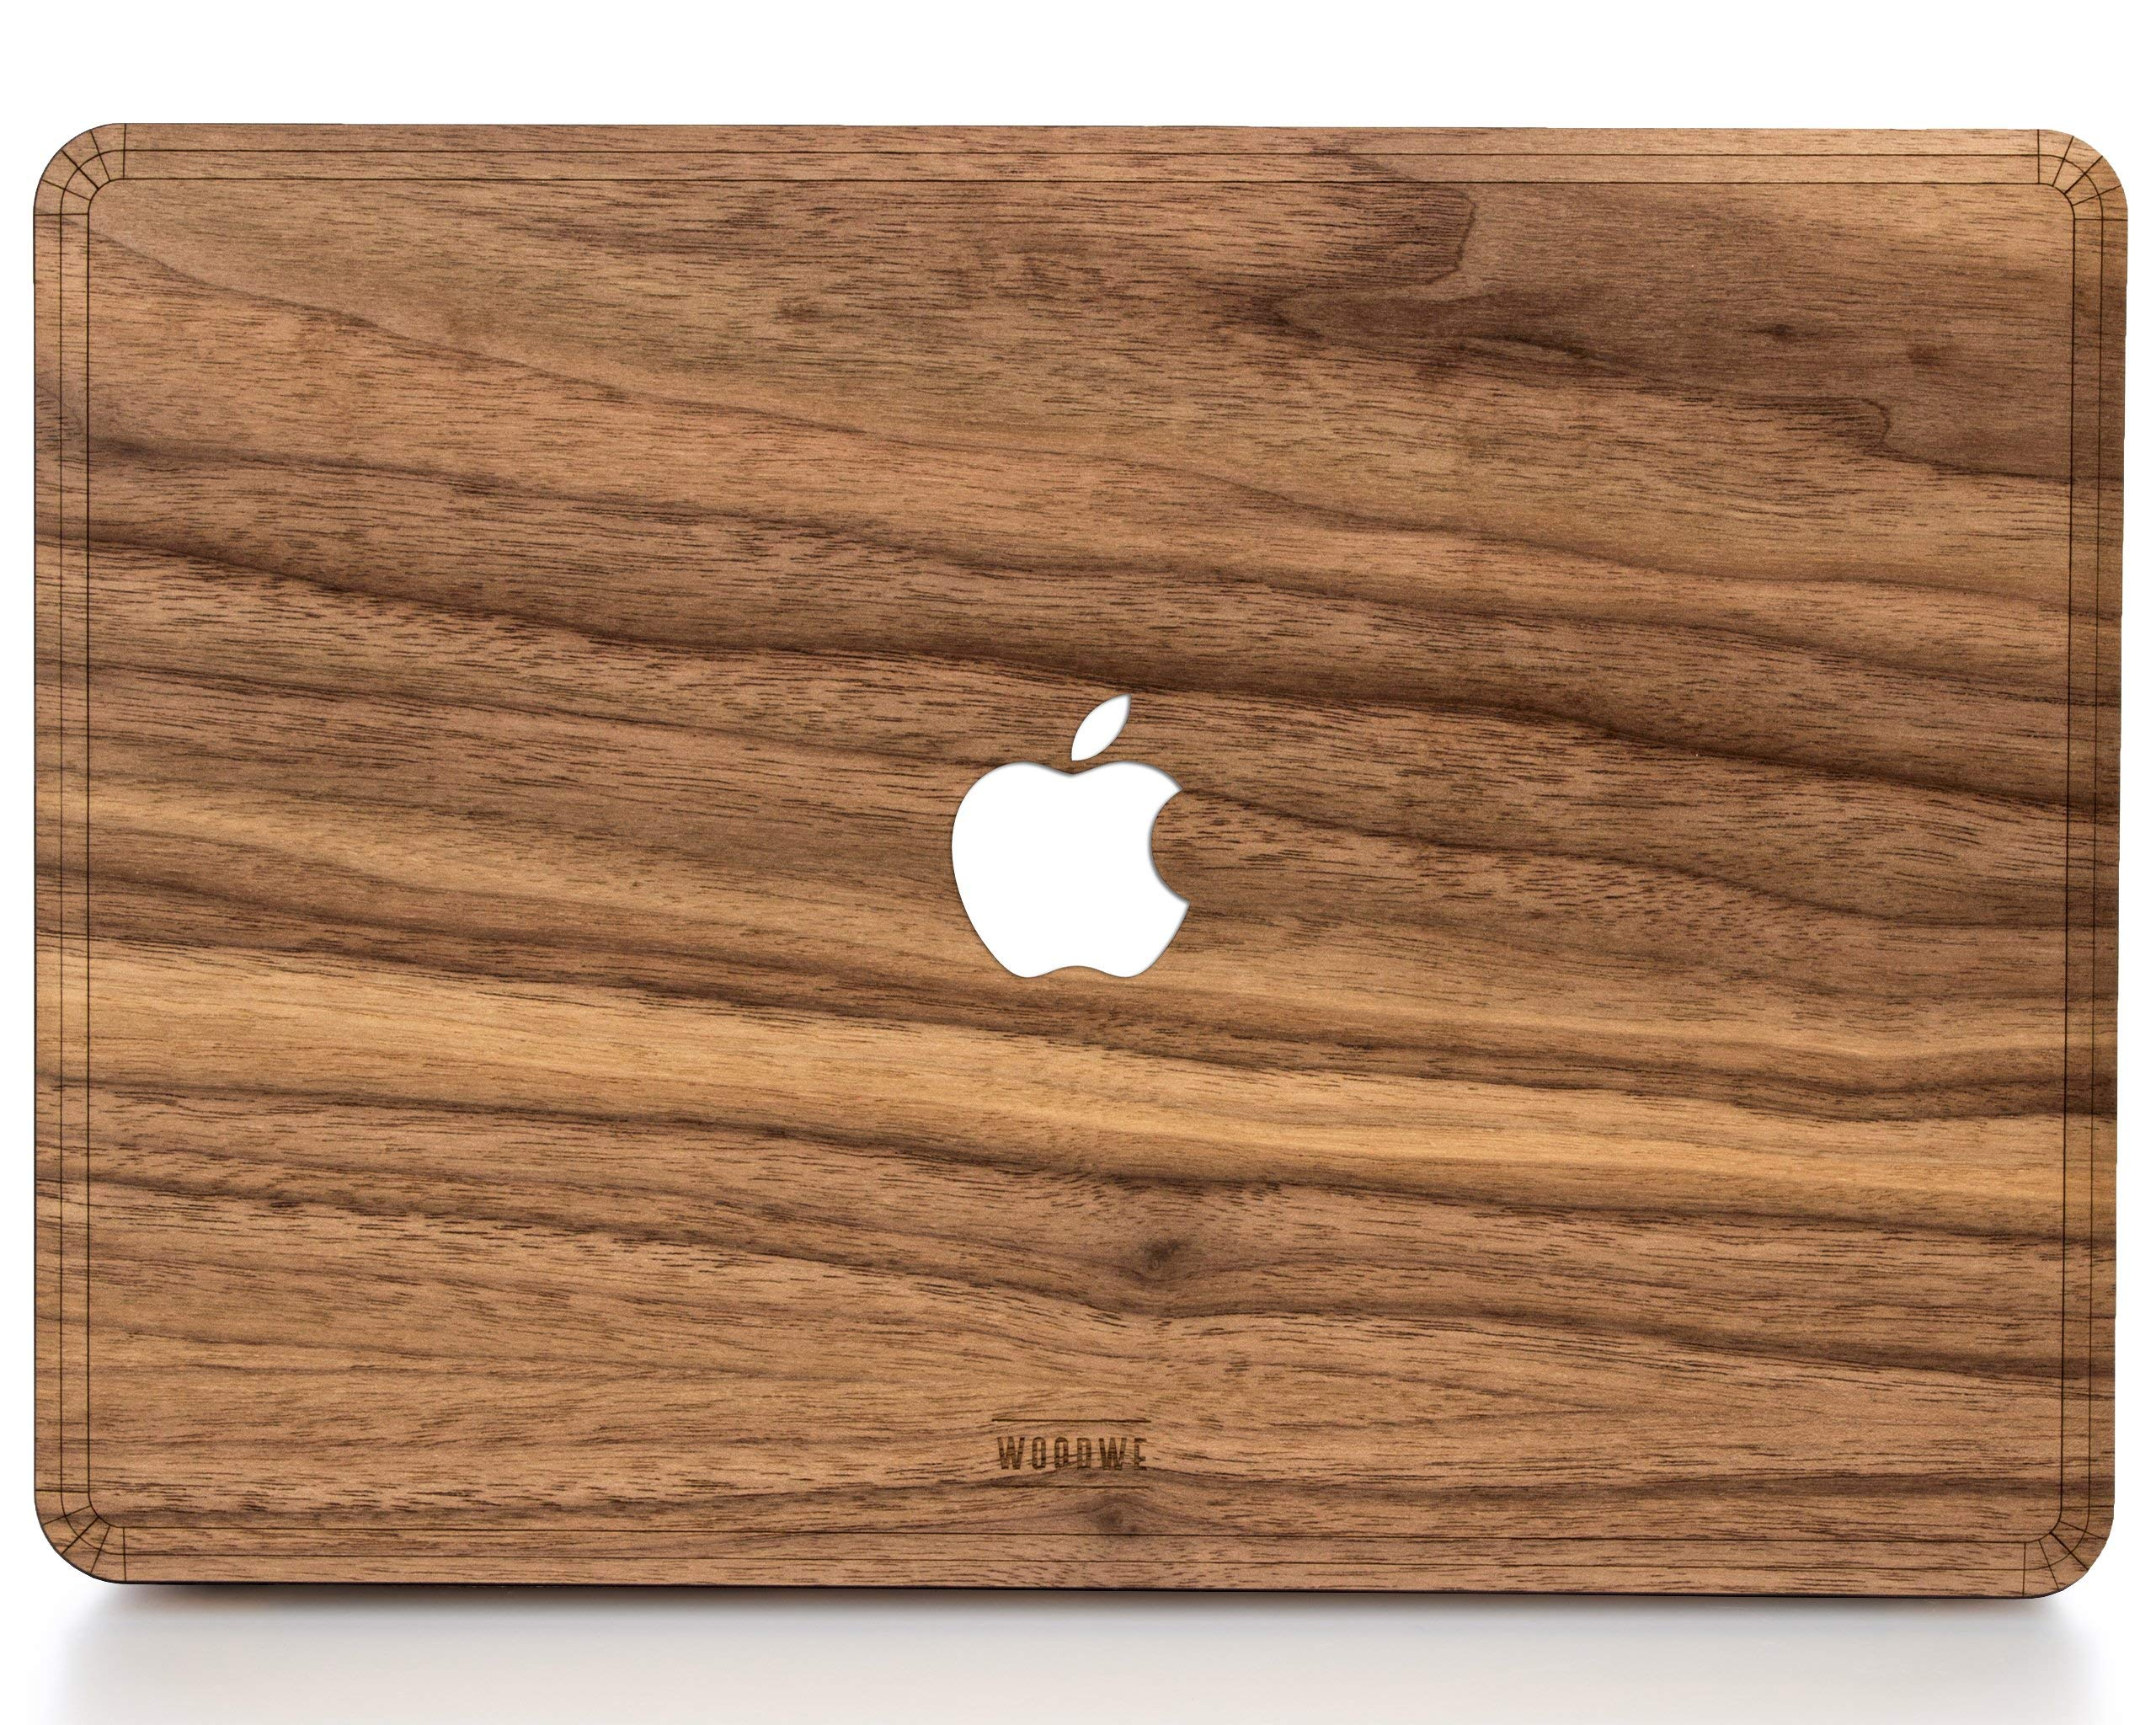 WOODWE Real Wood MacBook Hard Case for Protection | for Mac Pro 15 inch Retina Display/White Apple Logo | Mid 2012 – Mid 2015 | Natural Walnut Wood